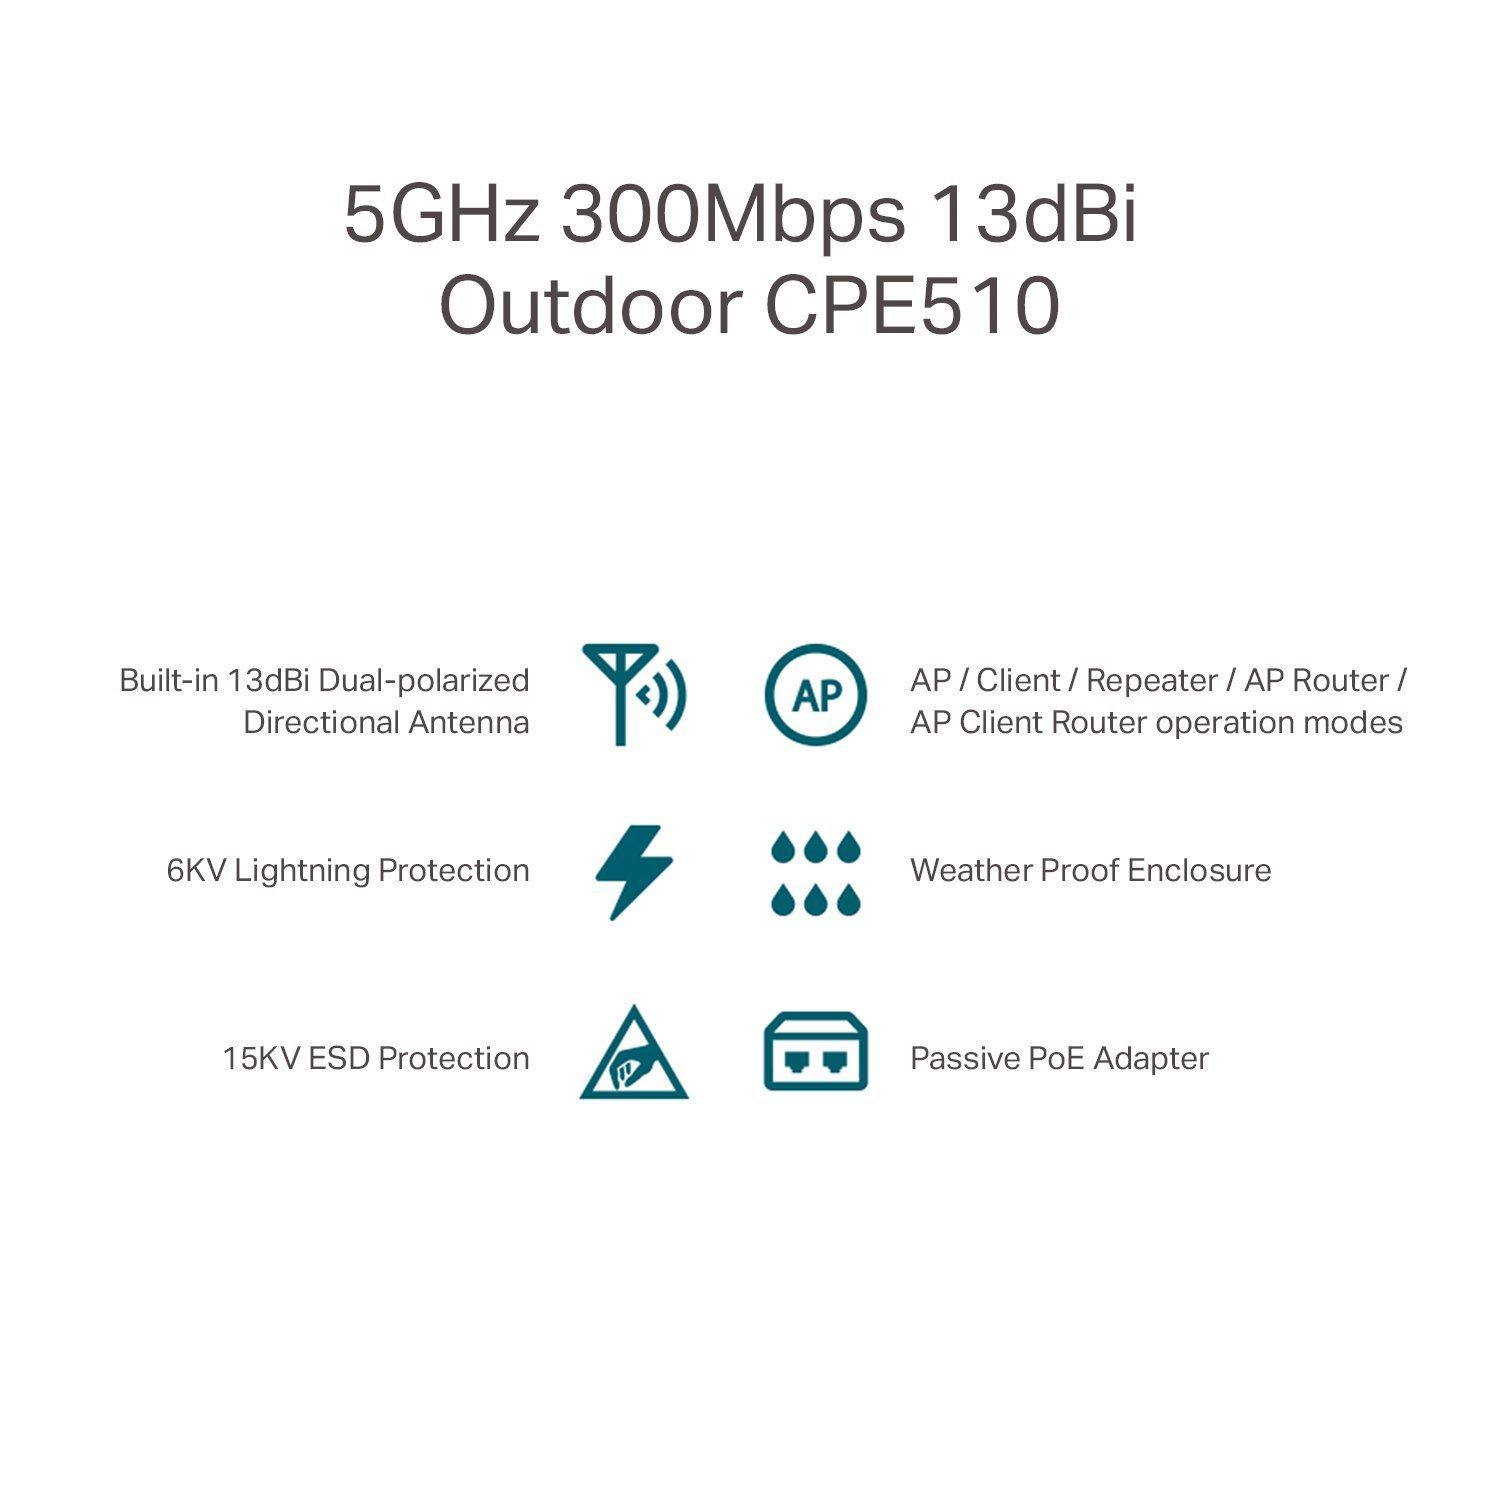 Tp Link Cpe510 5ghz 300mbps 13dbi Outdoor Cpe Ap Bridge Repeater Cpe220 24ghz 12dbi Router